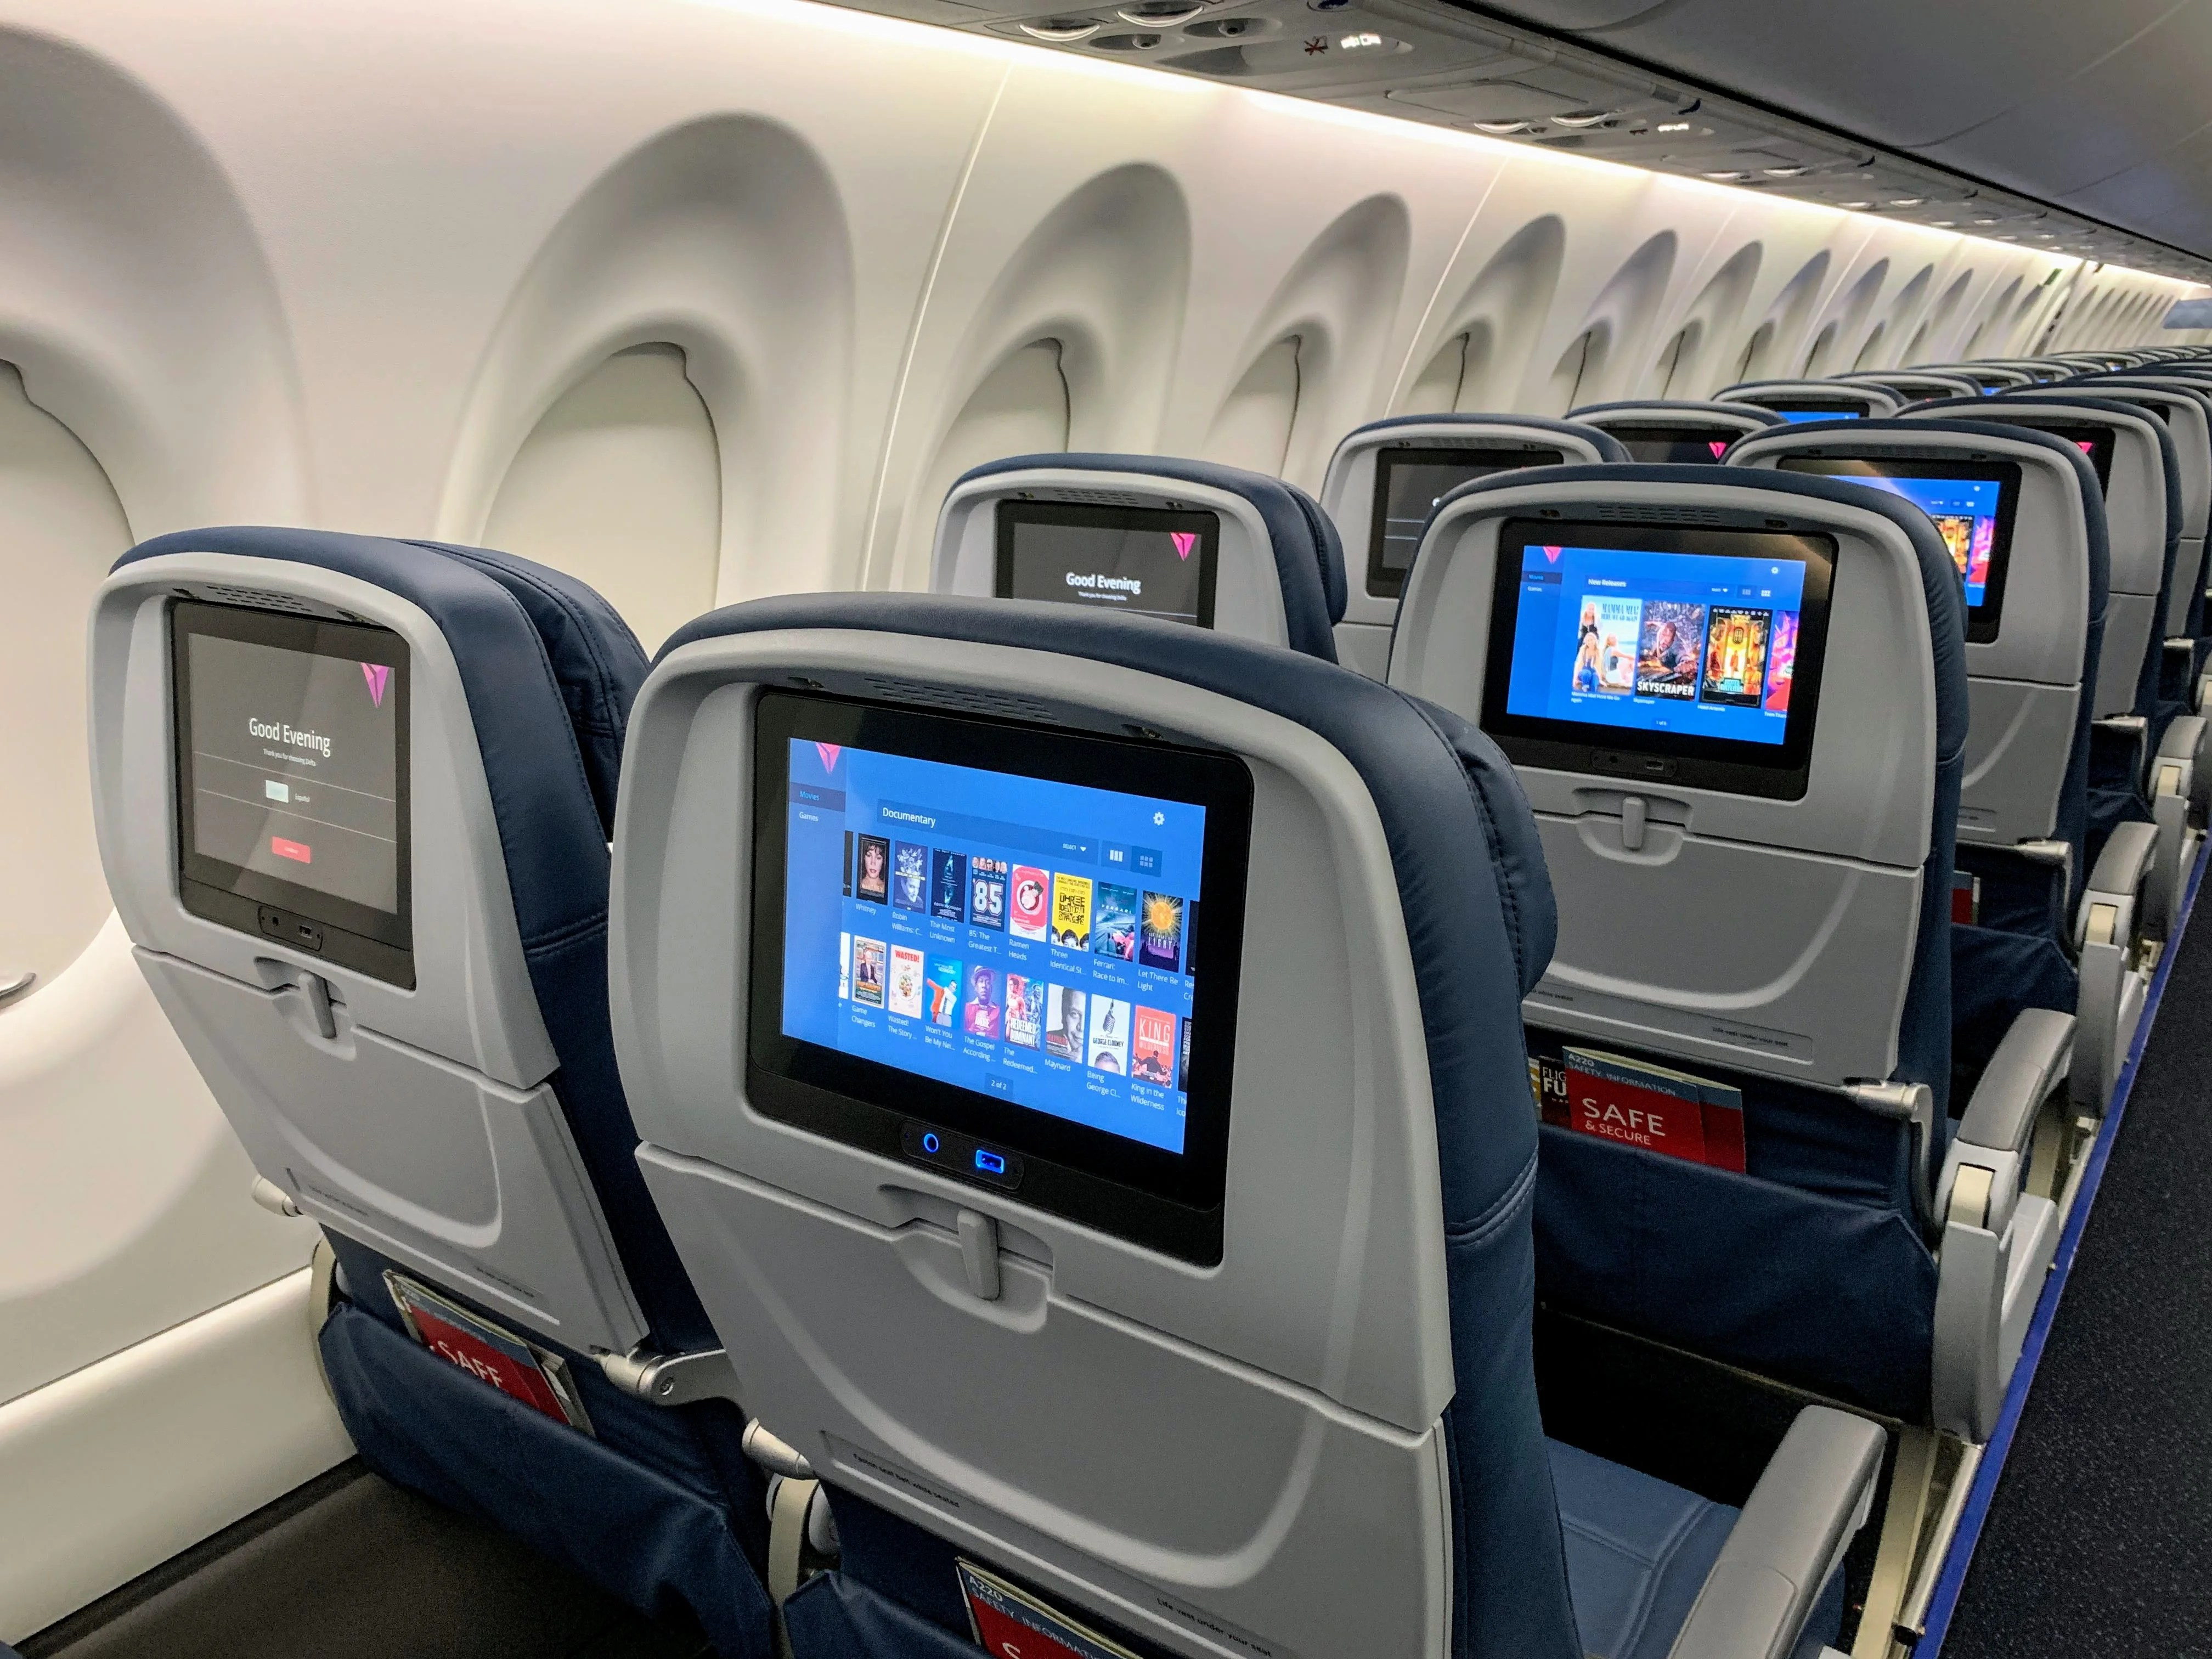 La Chambre Bleue Watch Online English Subtitles What S On Delta S Inflight Entertainment For June 2019